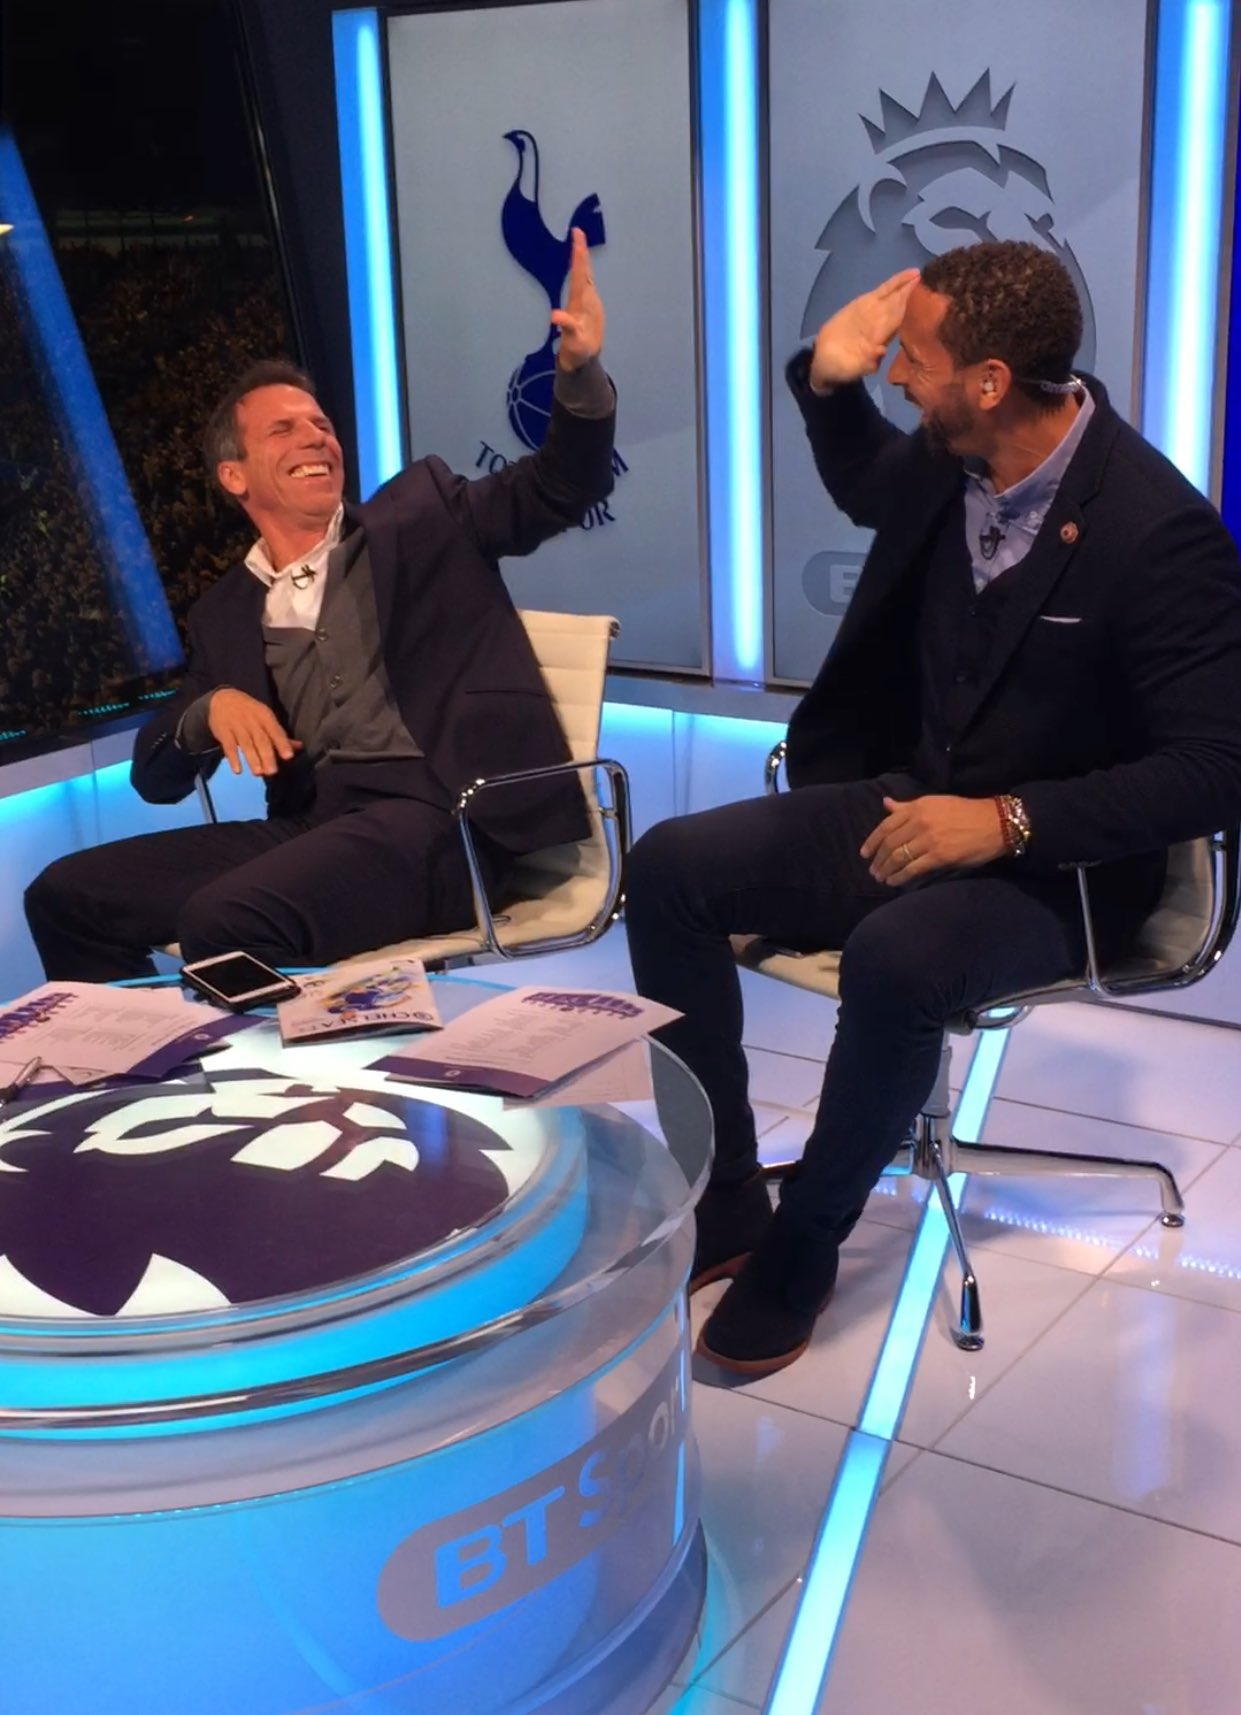 Whaaaaaat a goal... half time coverage coming soon on @btsportfootball 1-1 @zola_official is a happy man! #CHETOT https://t.co/07cPxY5QuJ